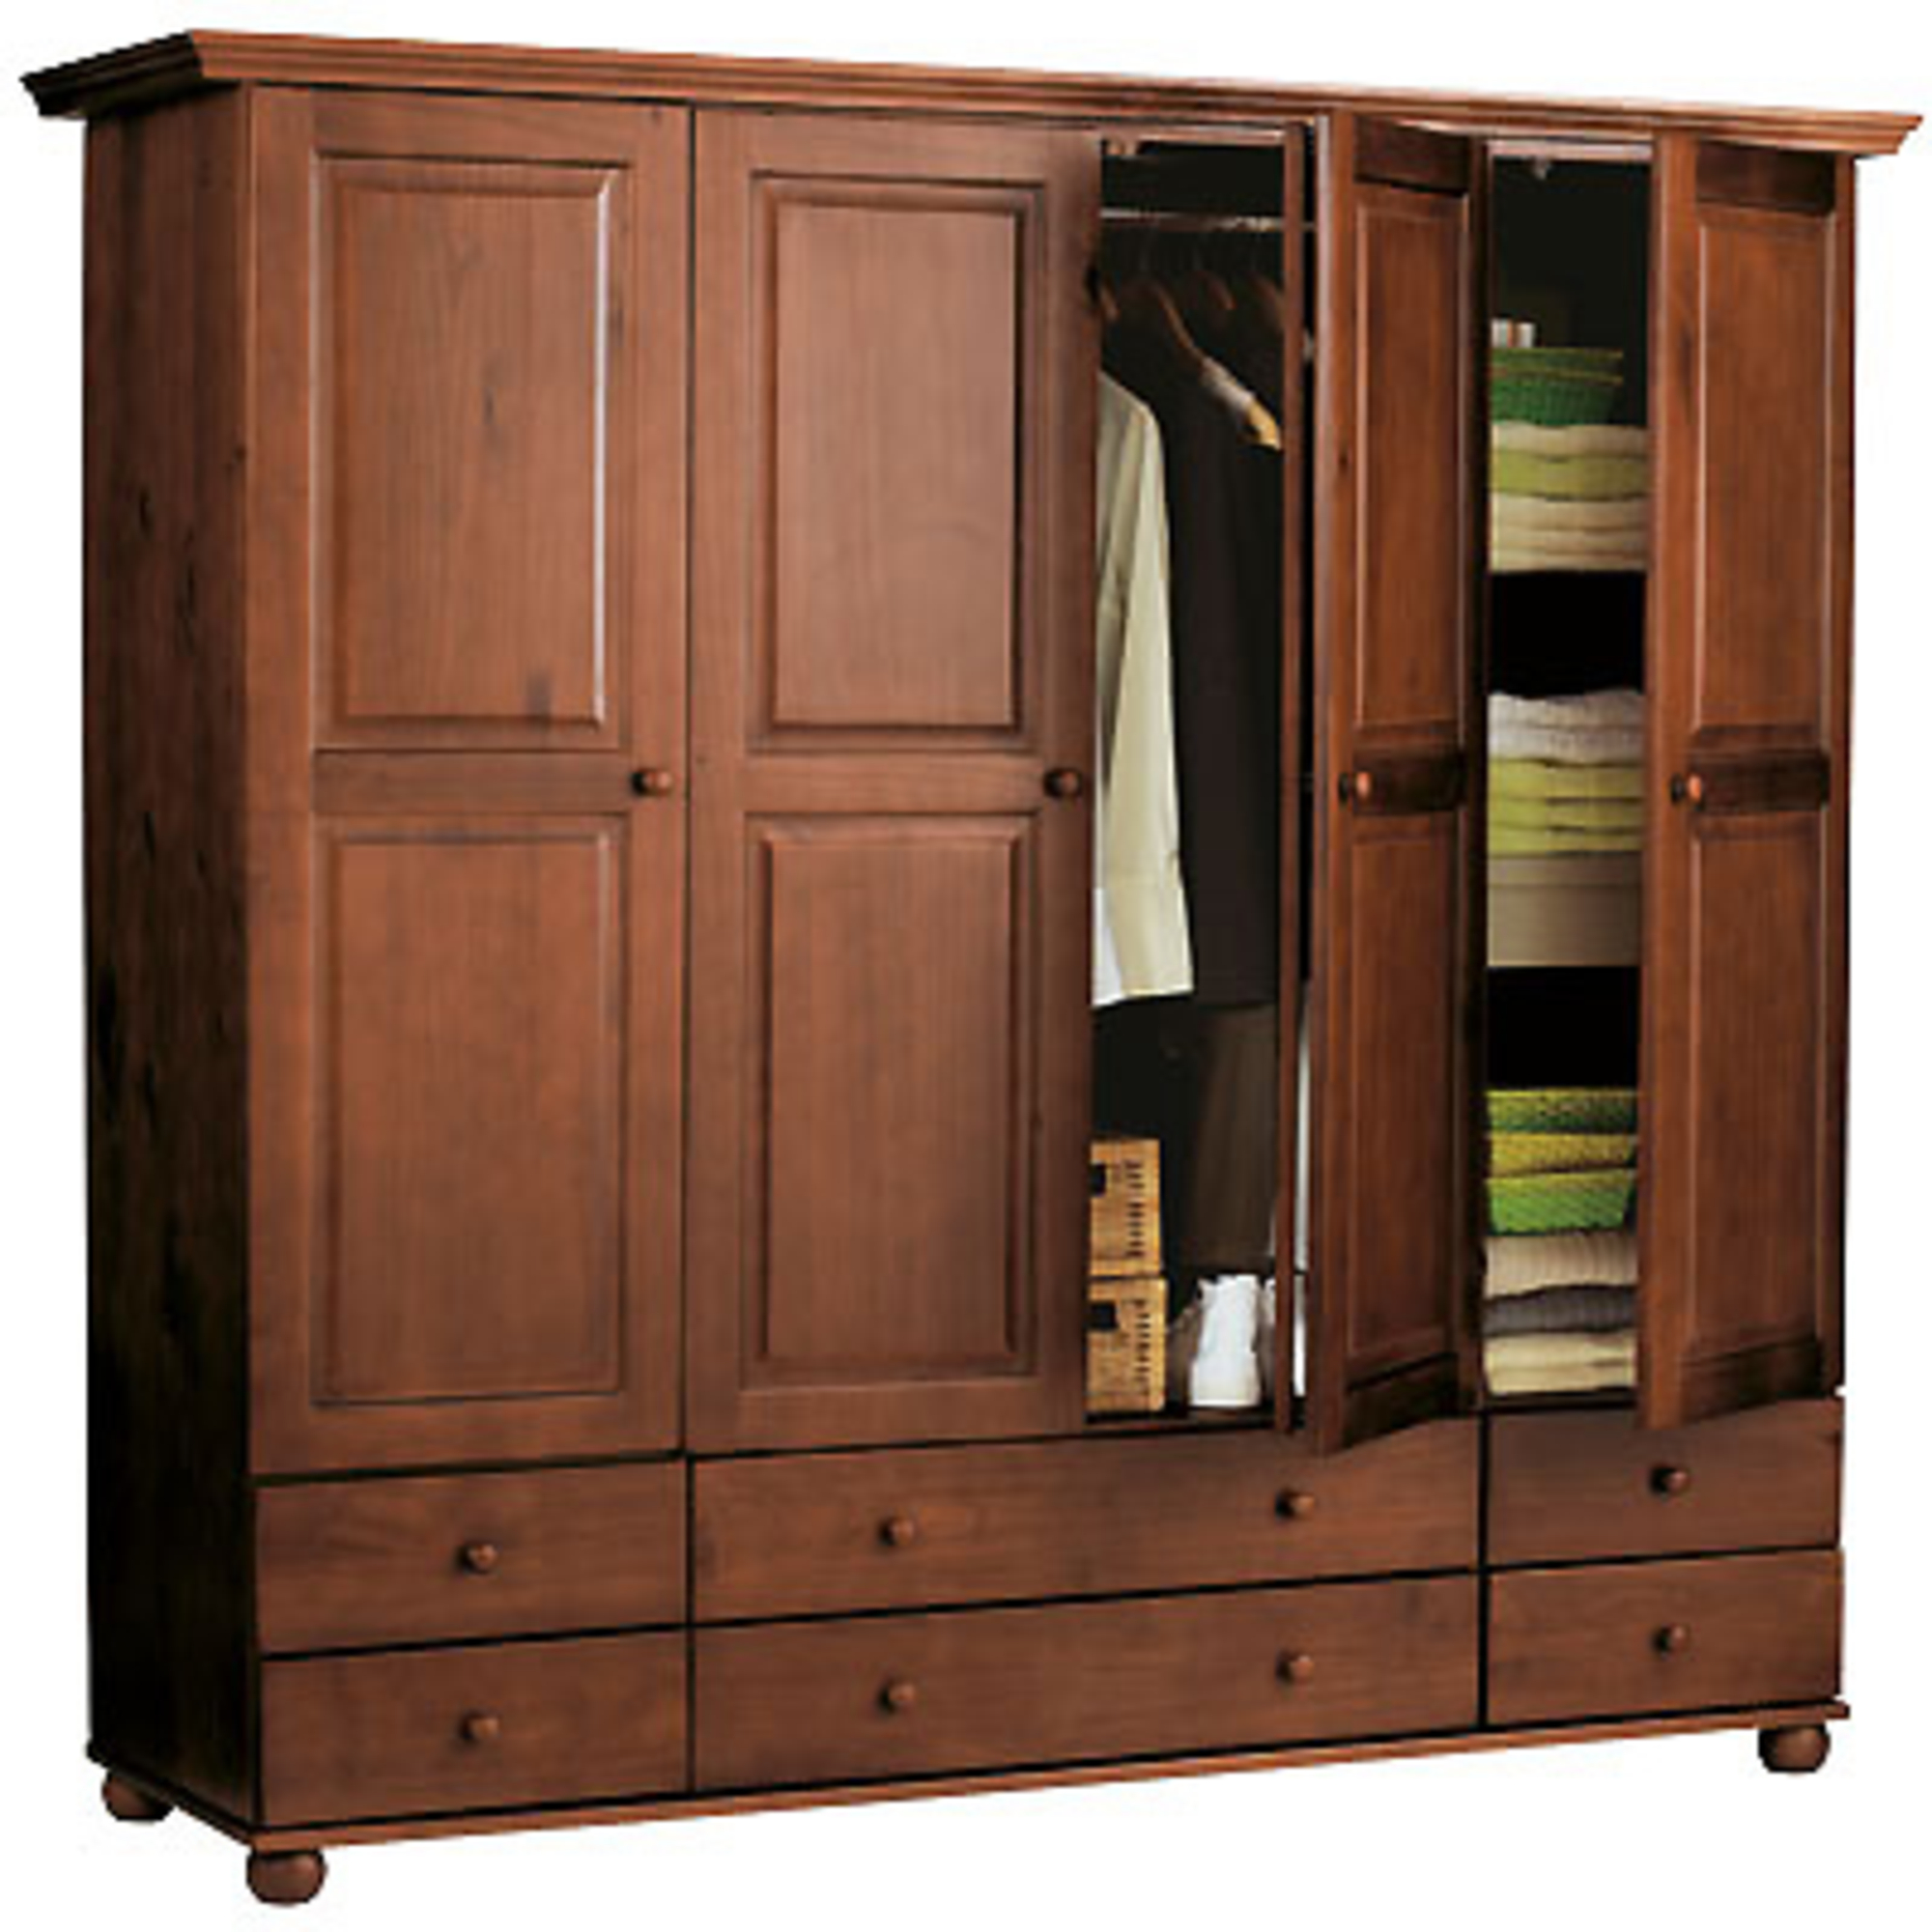 armoire la maison de valerie armoire annecy 4 portes 6. Black Bedroom Furniture Sets. Home Design Ideas